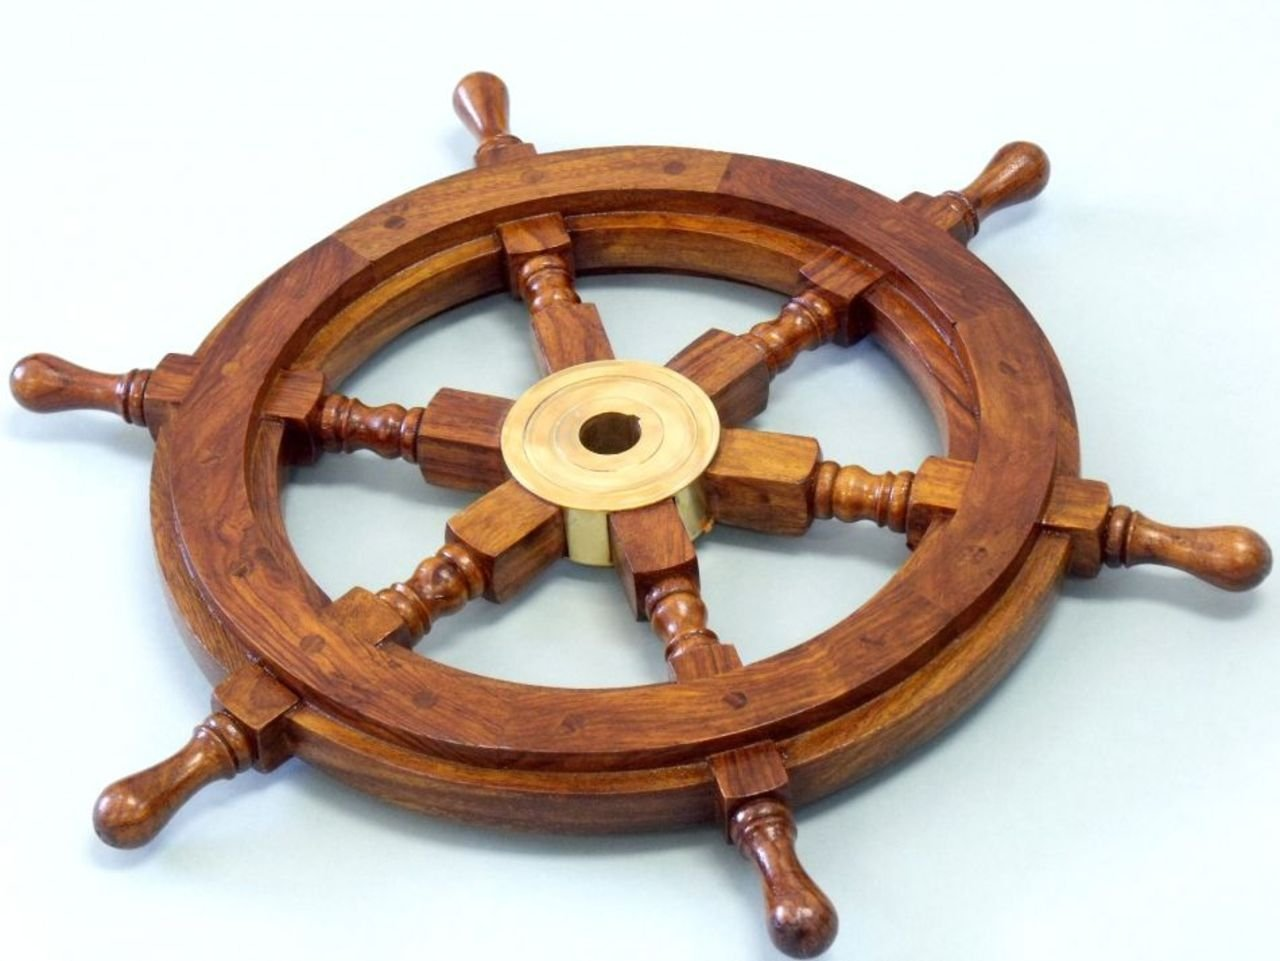 Amazon hampton nautical deluxe class wood and brass amazon hampton nautical deluxe class wood and brass decorative ship wheel 15 nautical home decoration gifts home kitchen amipublicfo Images